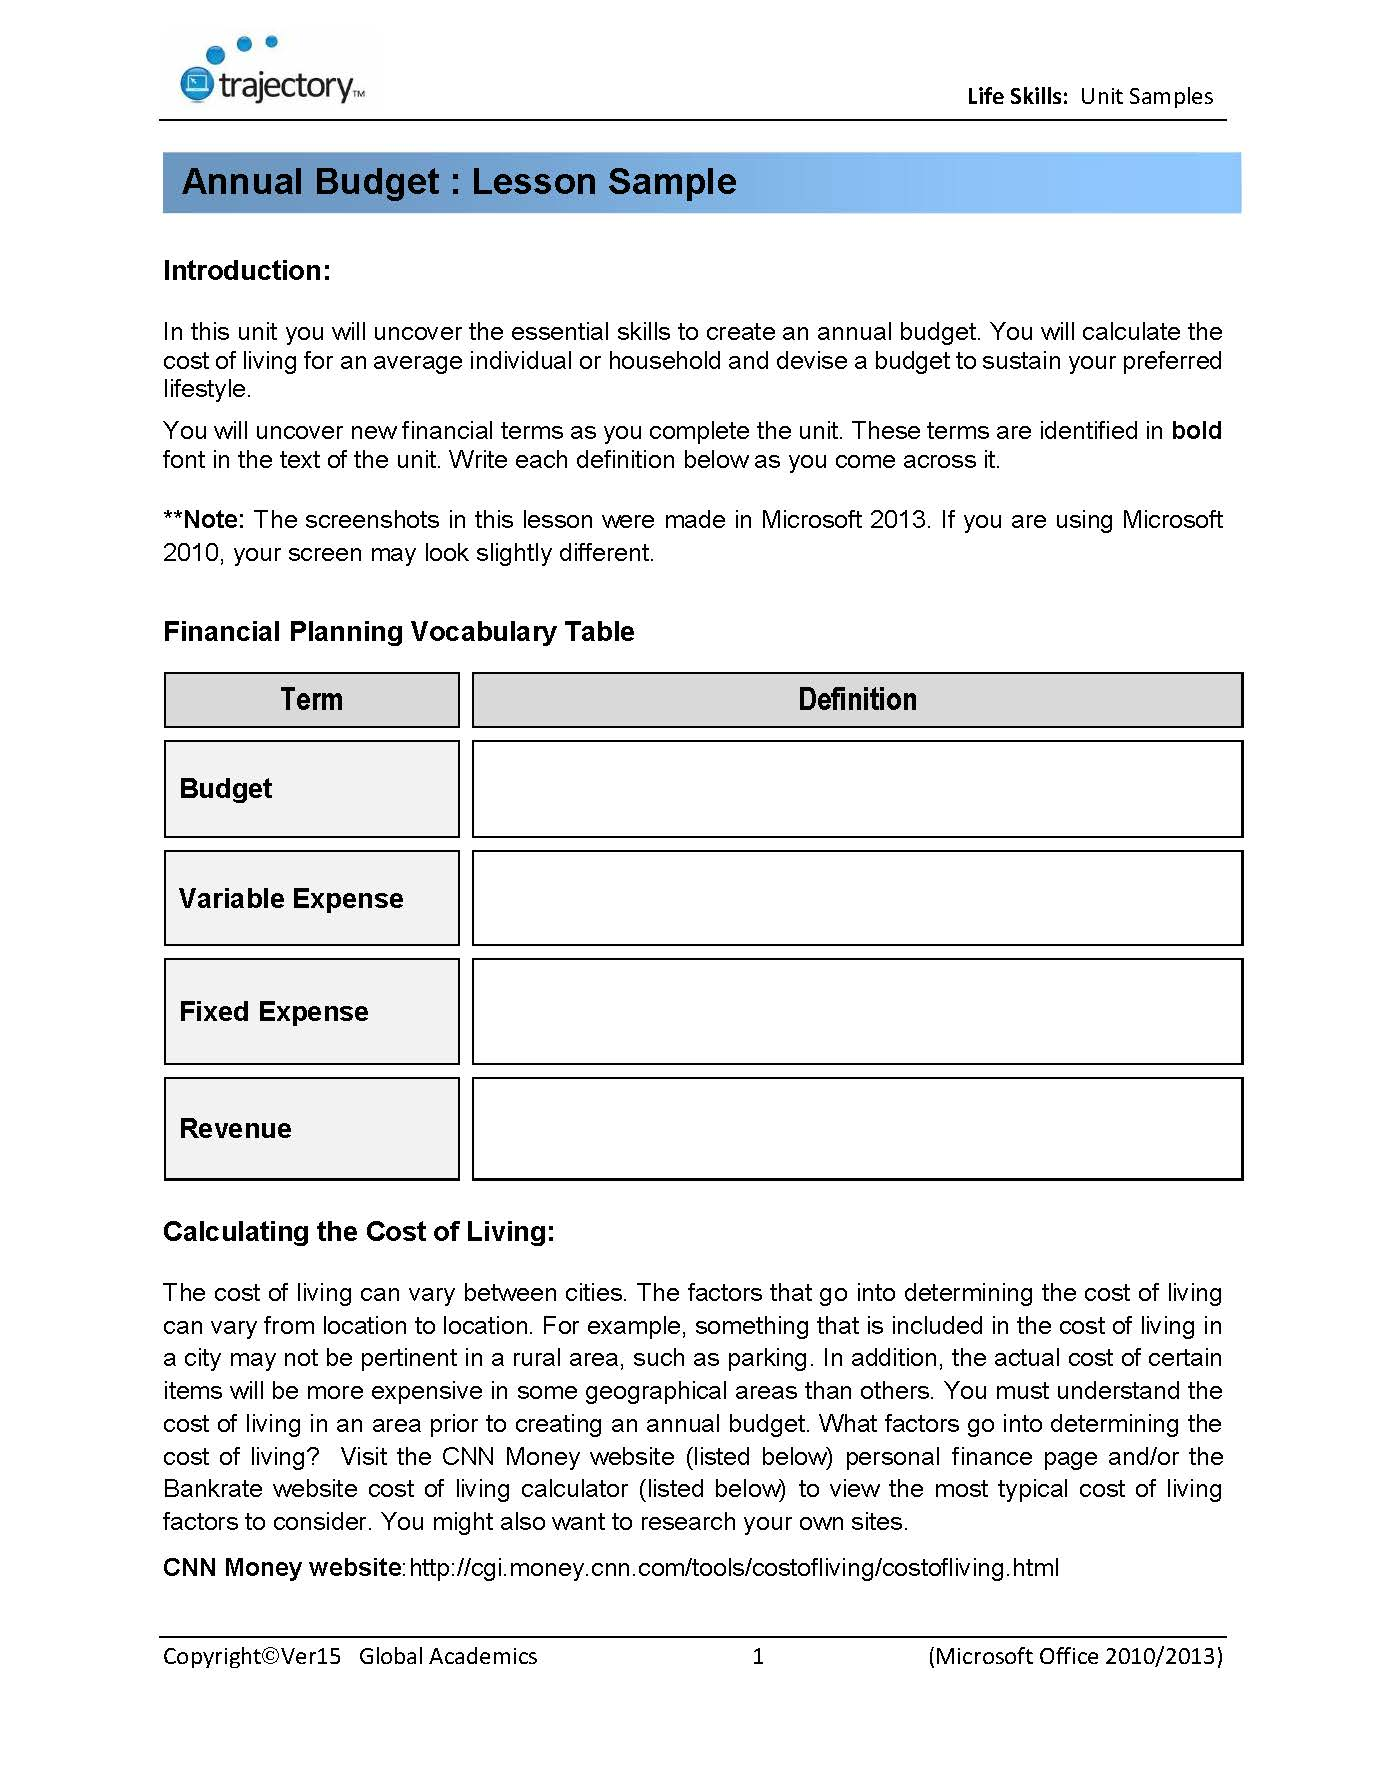 Worksheets Life Skills Math Worksheets life skills math worksheets sharebrowse sharebrowse